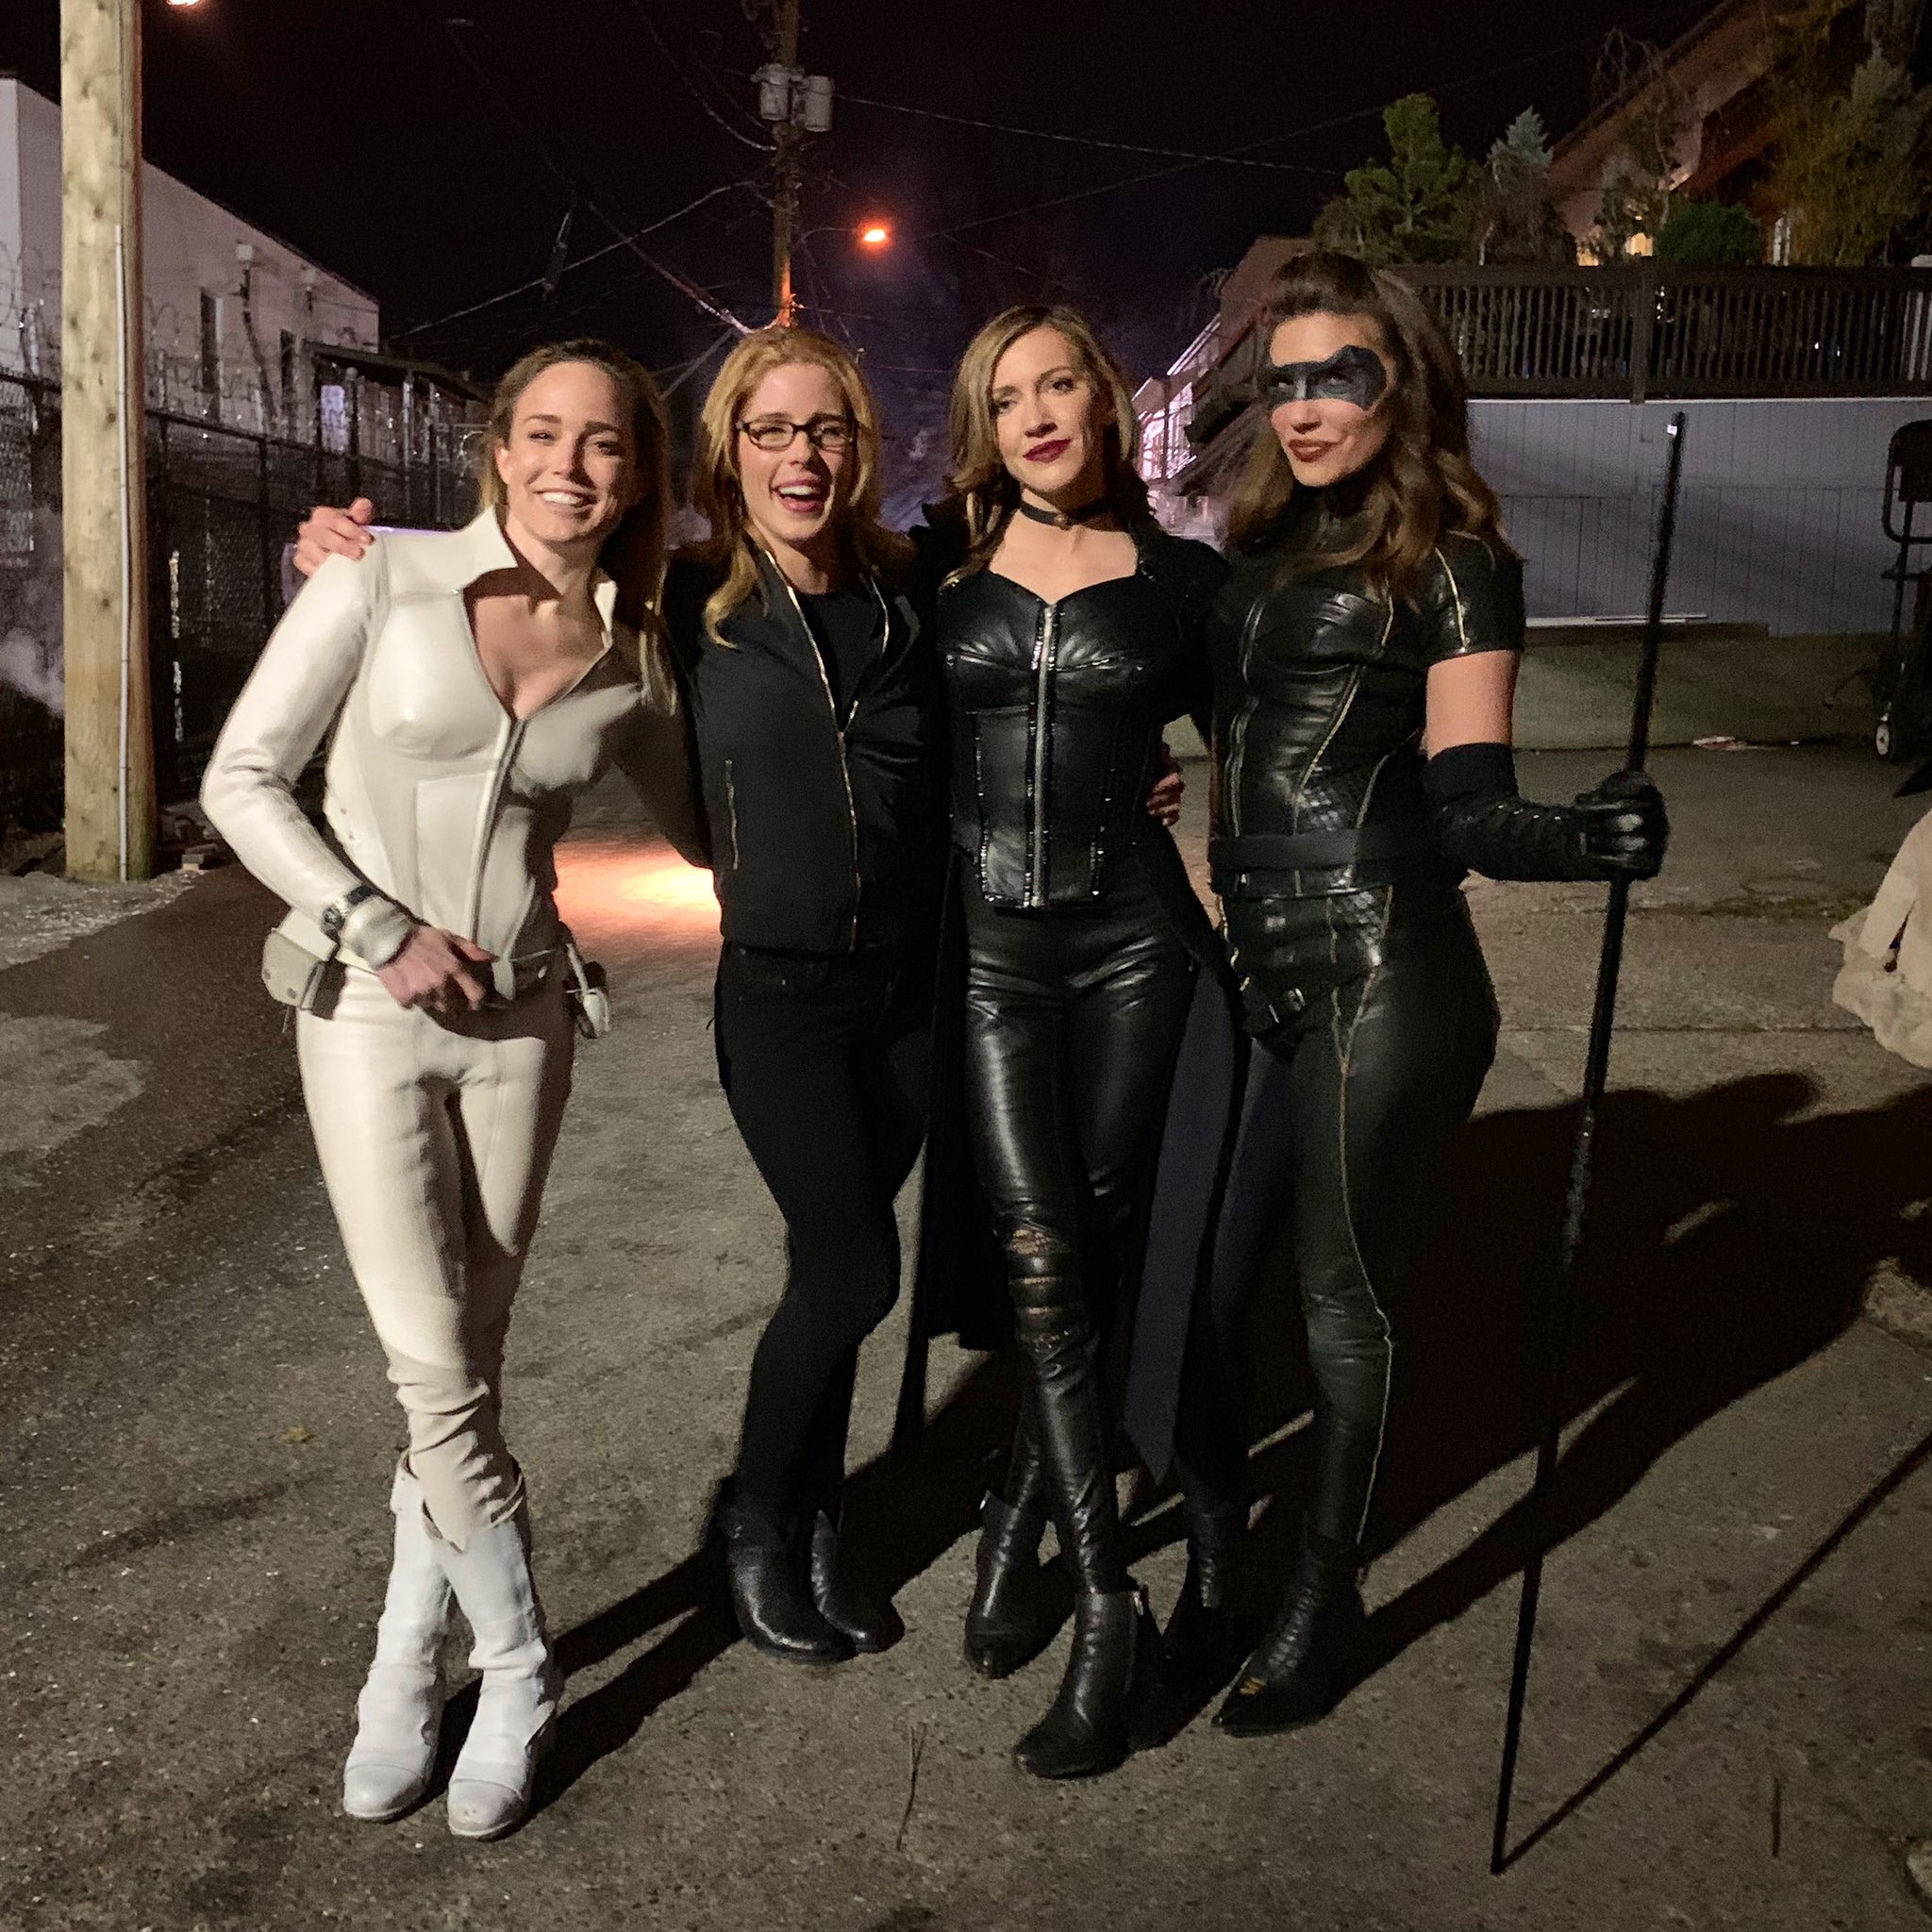 Caity Lotz On Twitter Wear White They Said You Ll Fit Right In